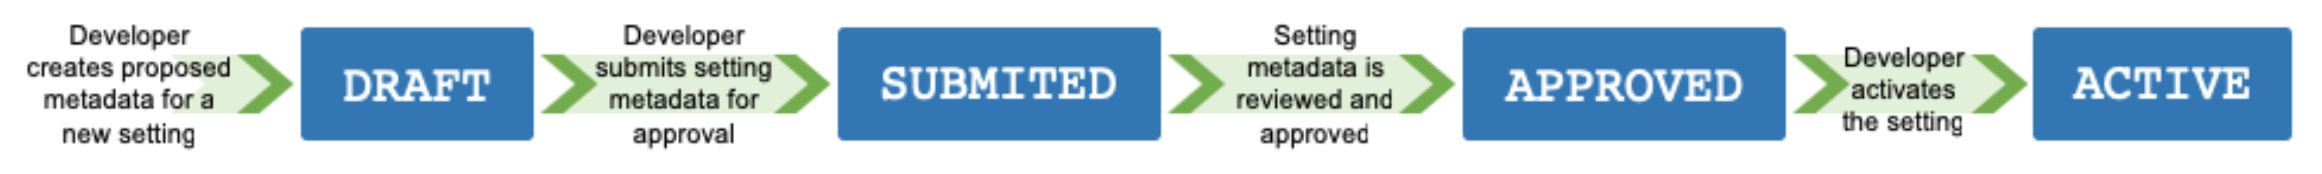 versioning-and-review-process-diagram